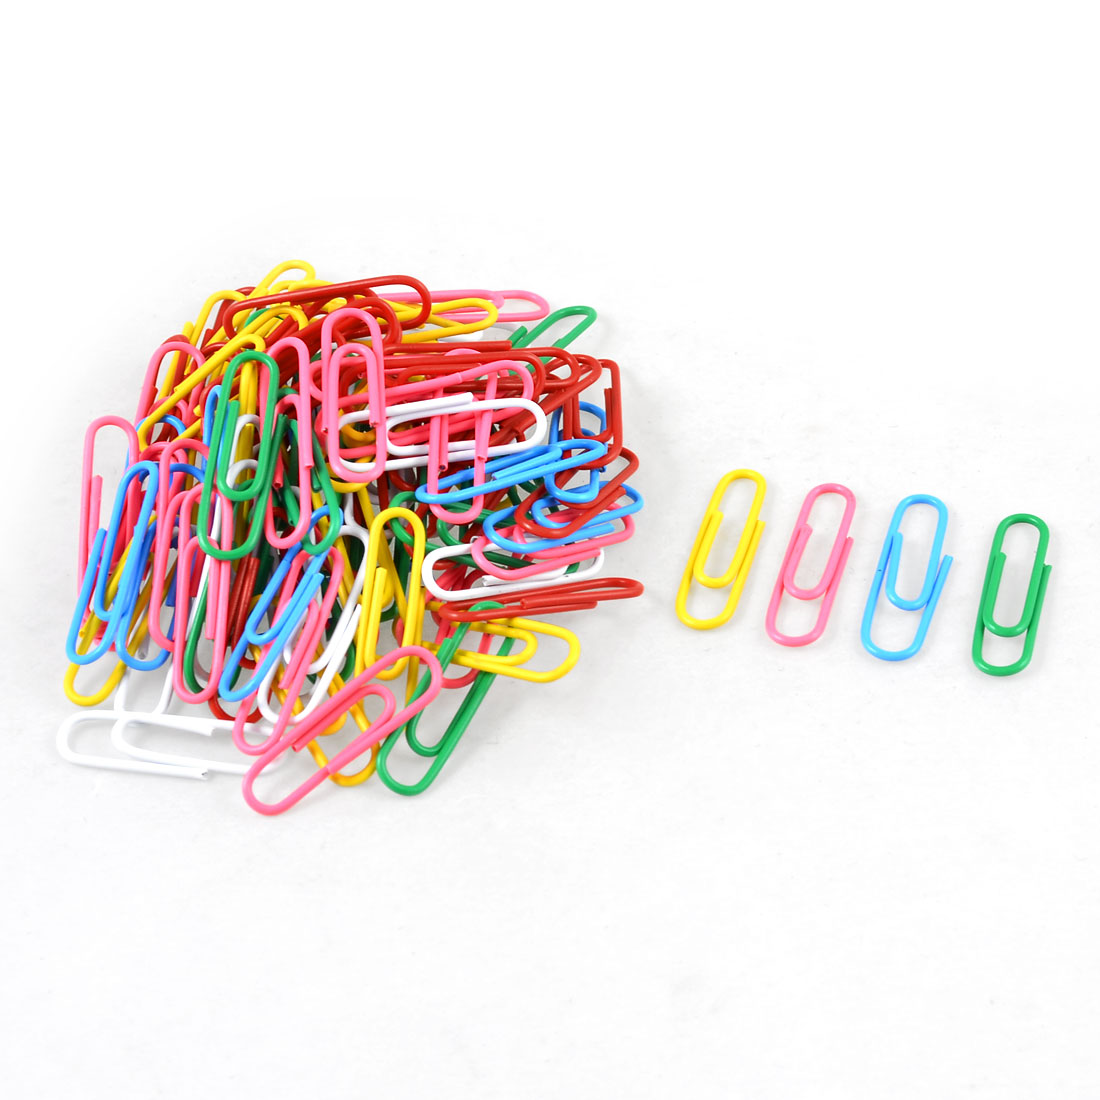 100 Pcs Assorted Color Plastic Coated Metal Paper Money Invoice Paper Clips